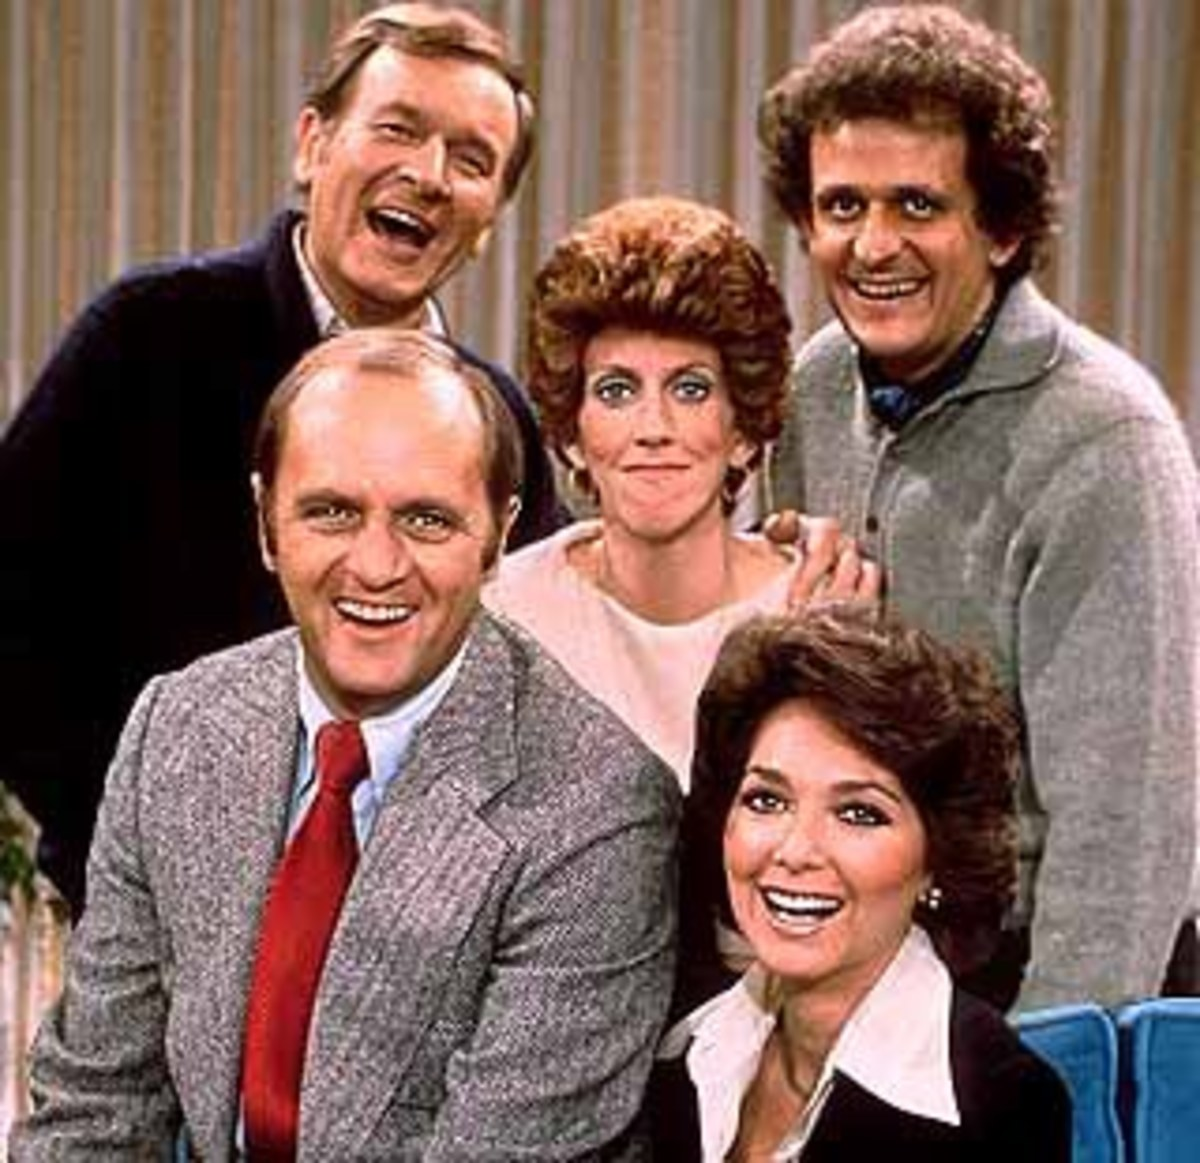 The cast of the Bob Newhart Show 1972